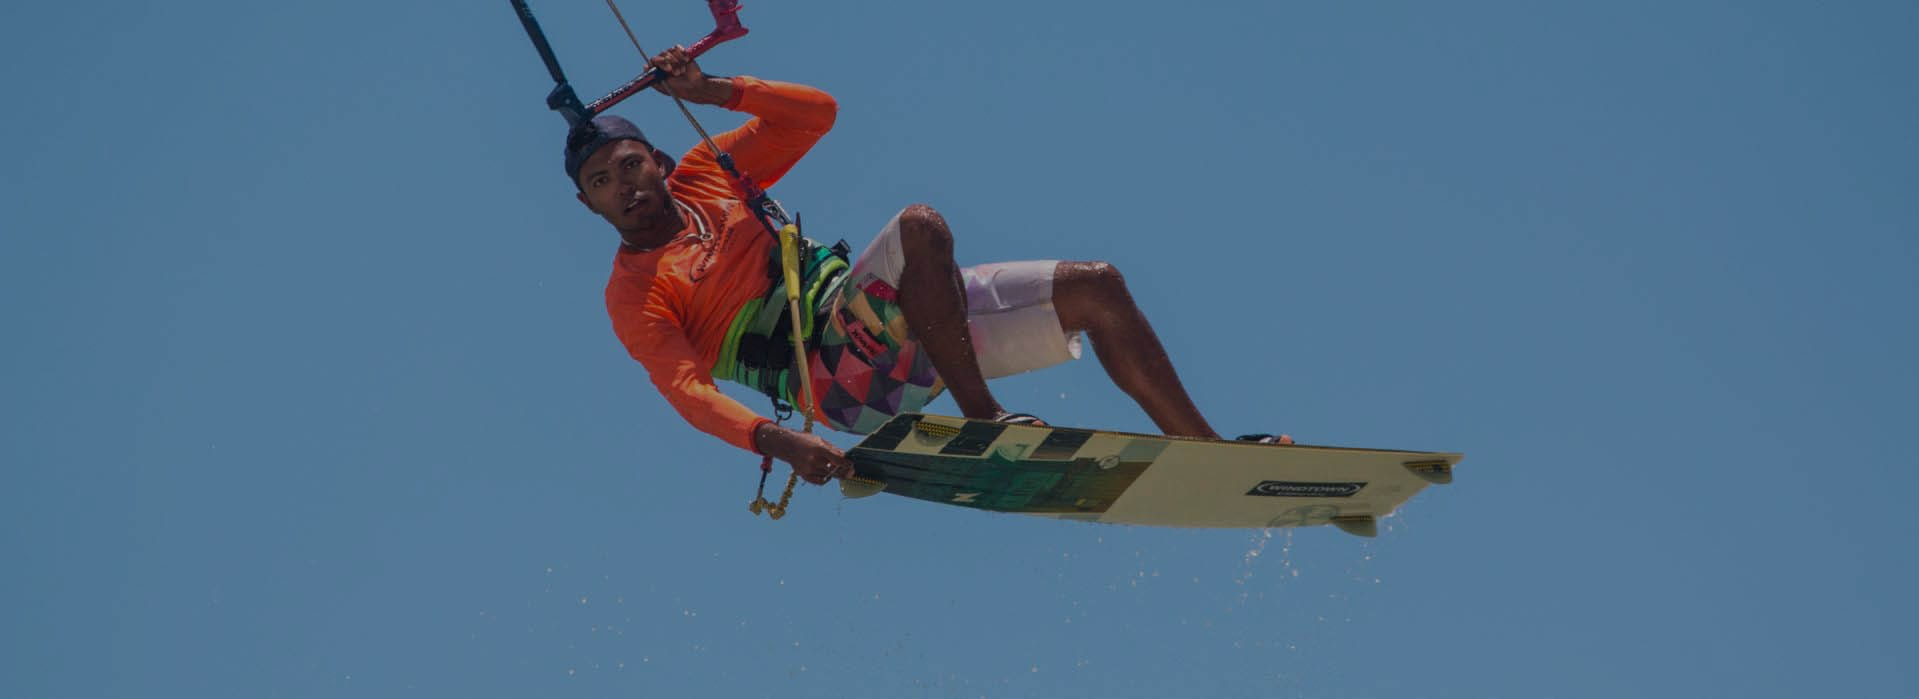 Kiters | Windtown Cucumbo Brazil